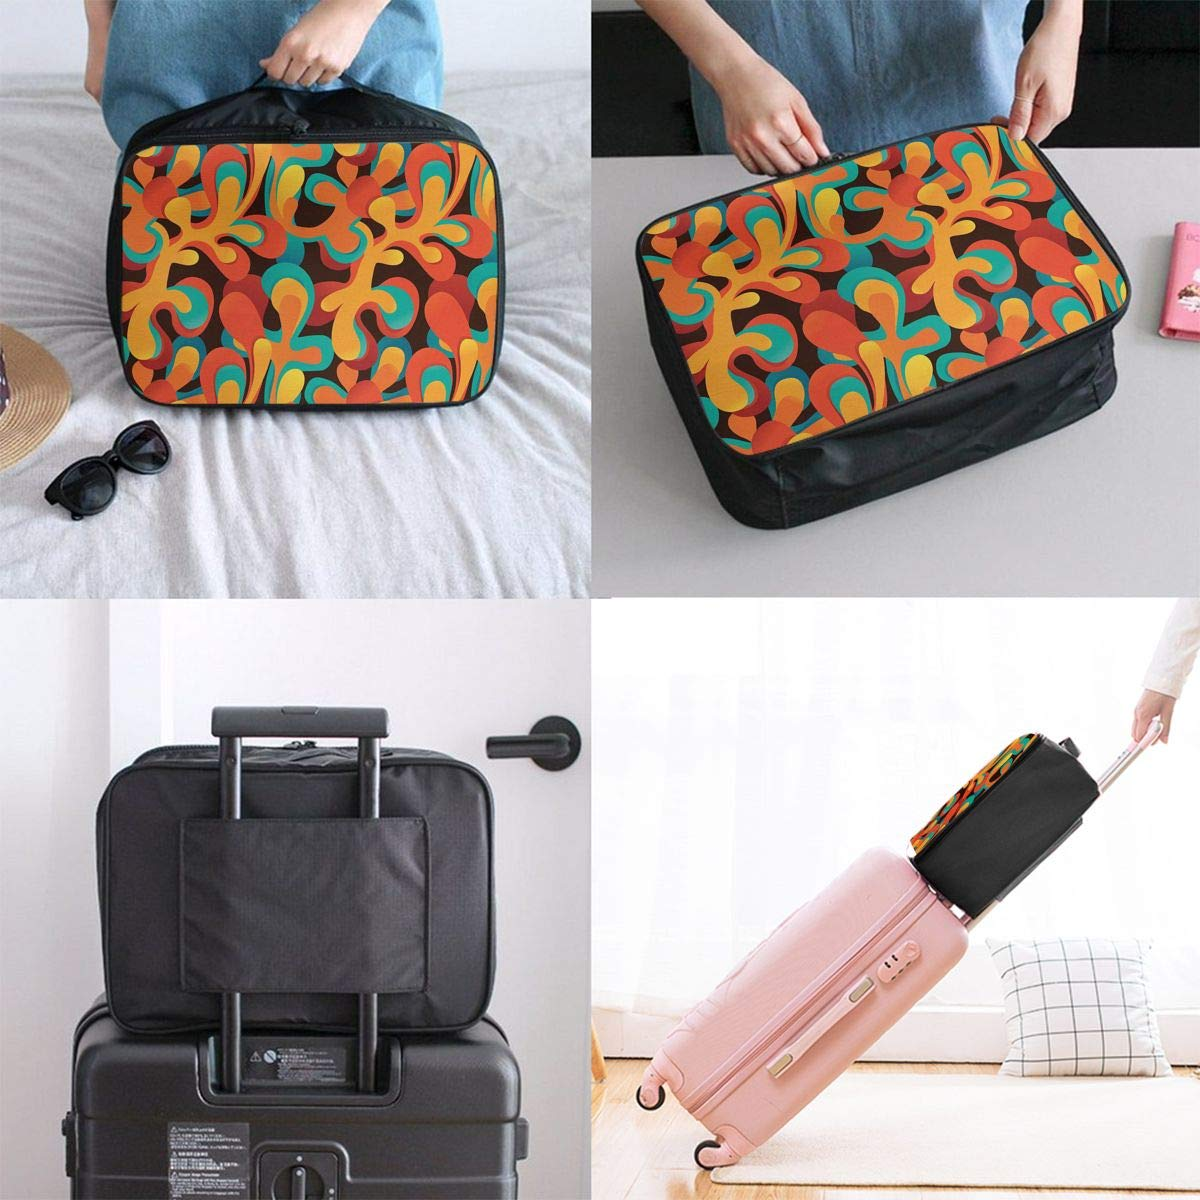 ADGAI Abstract Color Pattern Artistic Flourishes Canvas Travel Weekender Bag,Fashion Custom Lightweight Large Capacity Portable Luggage Bag,Suitcase Trolley Bag